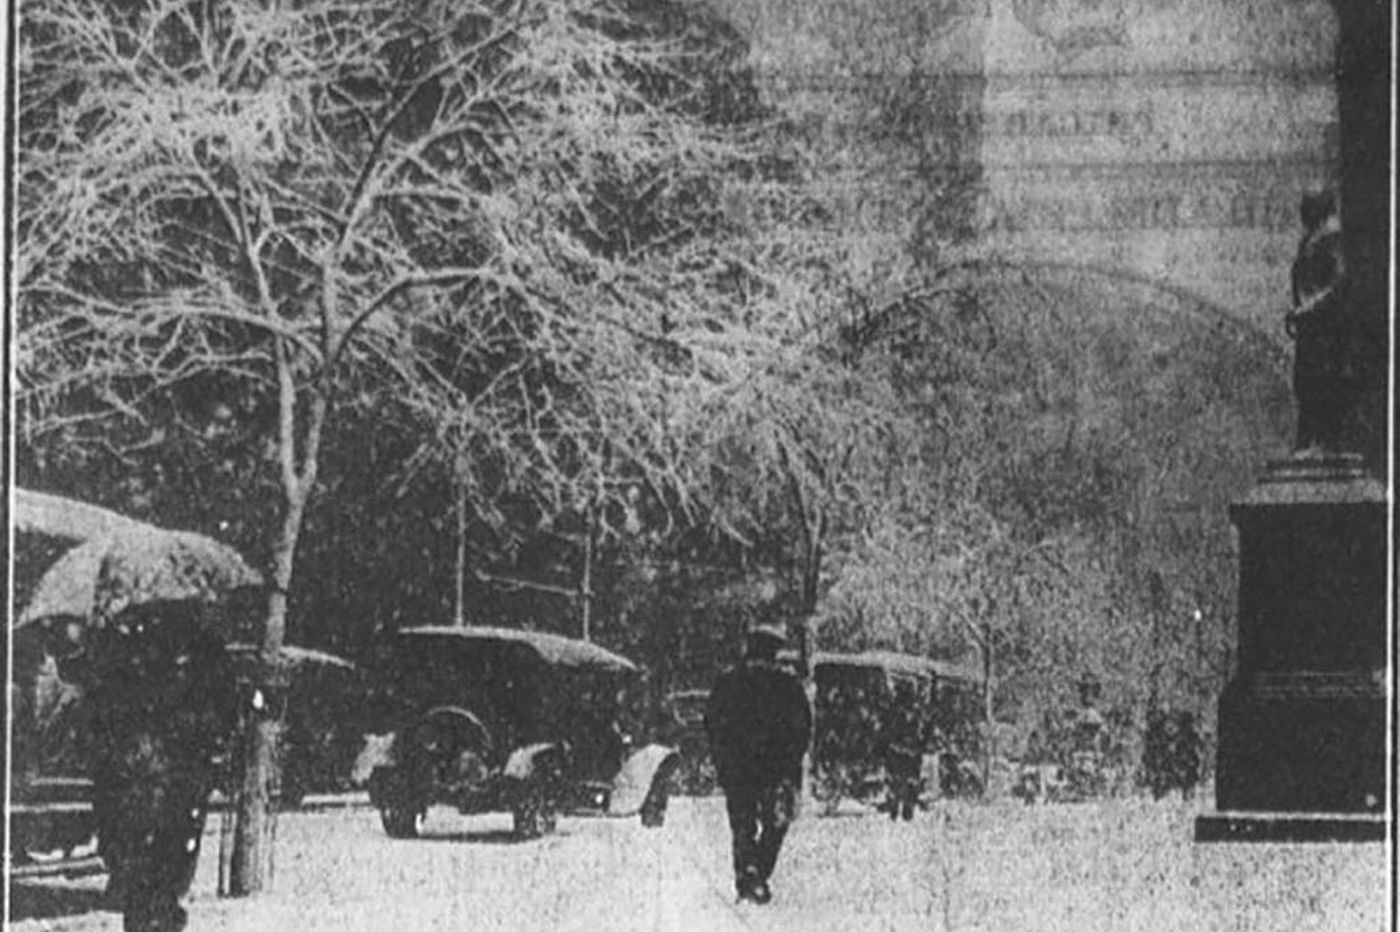 Easter whiteout: The improbable blizzard of 1915